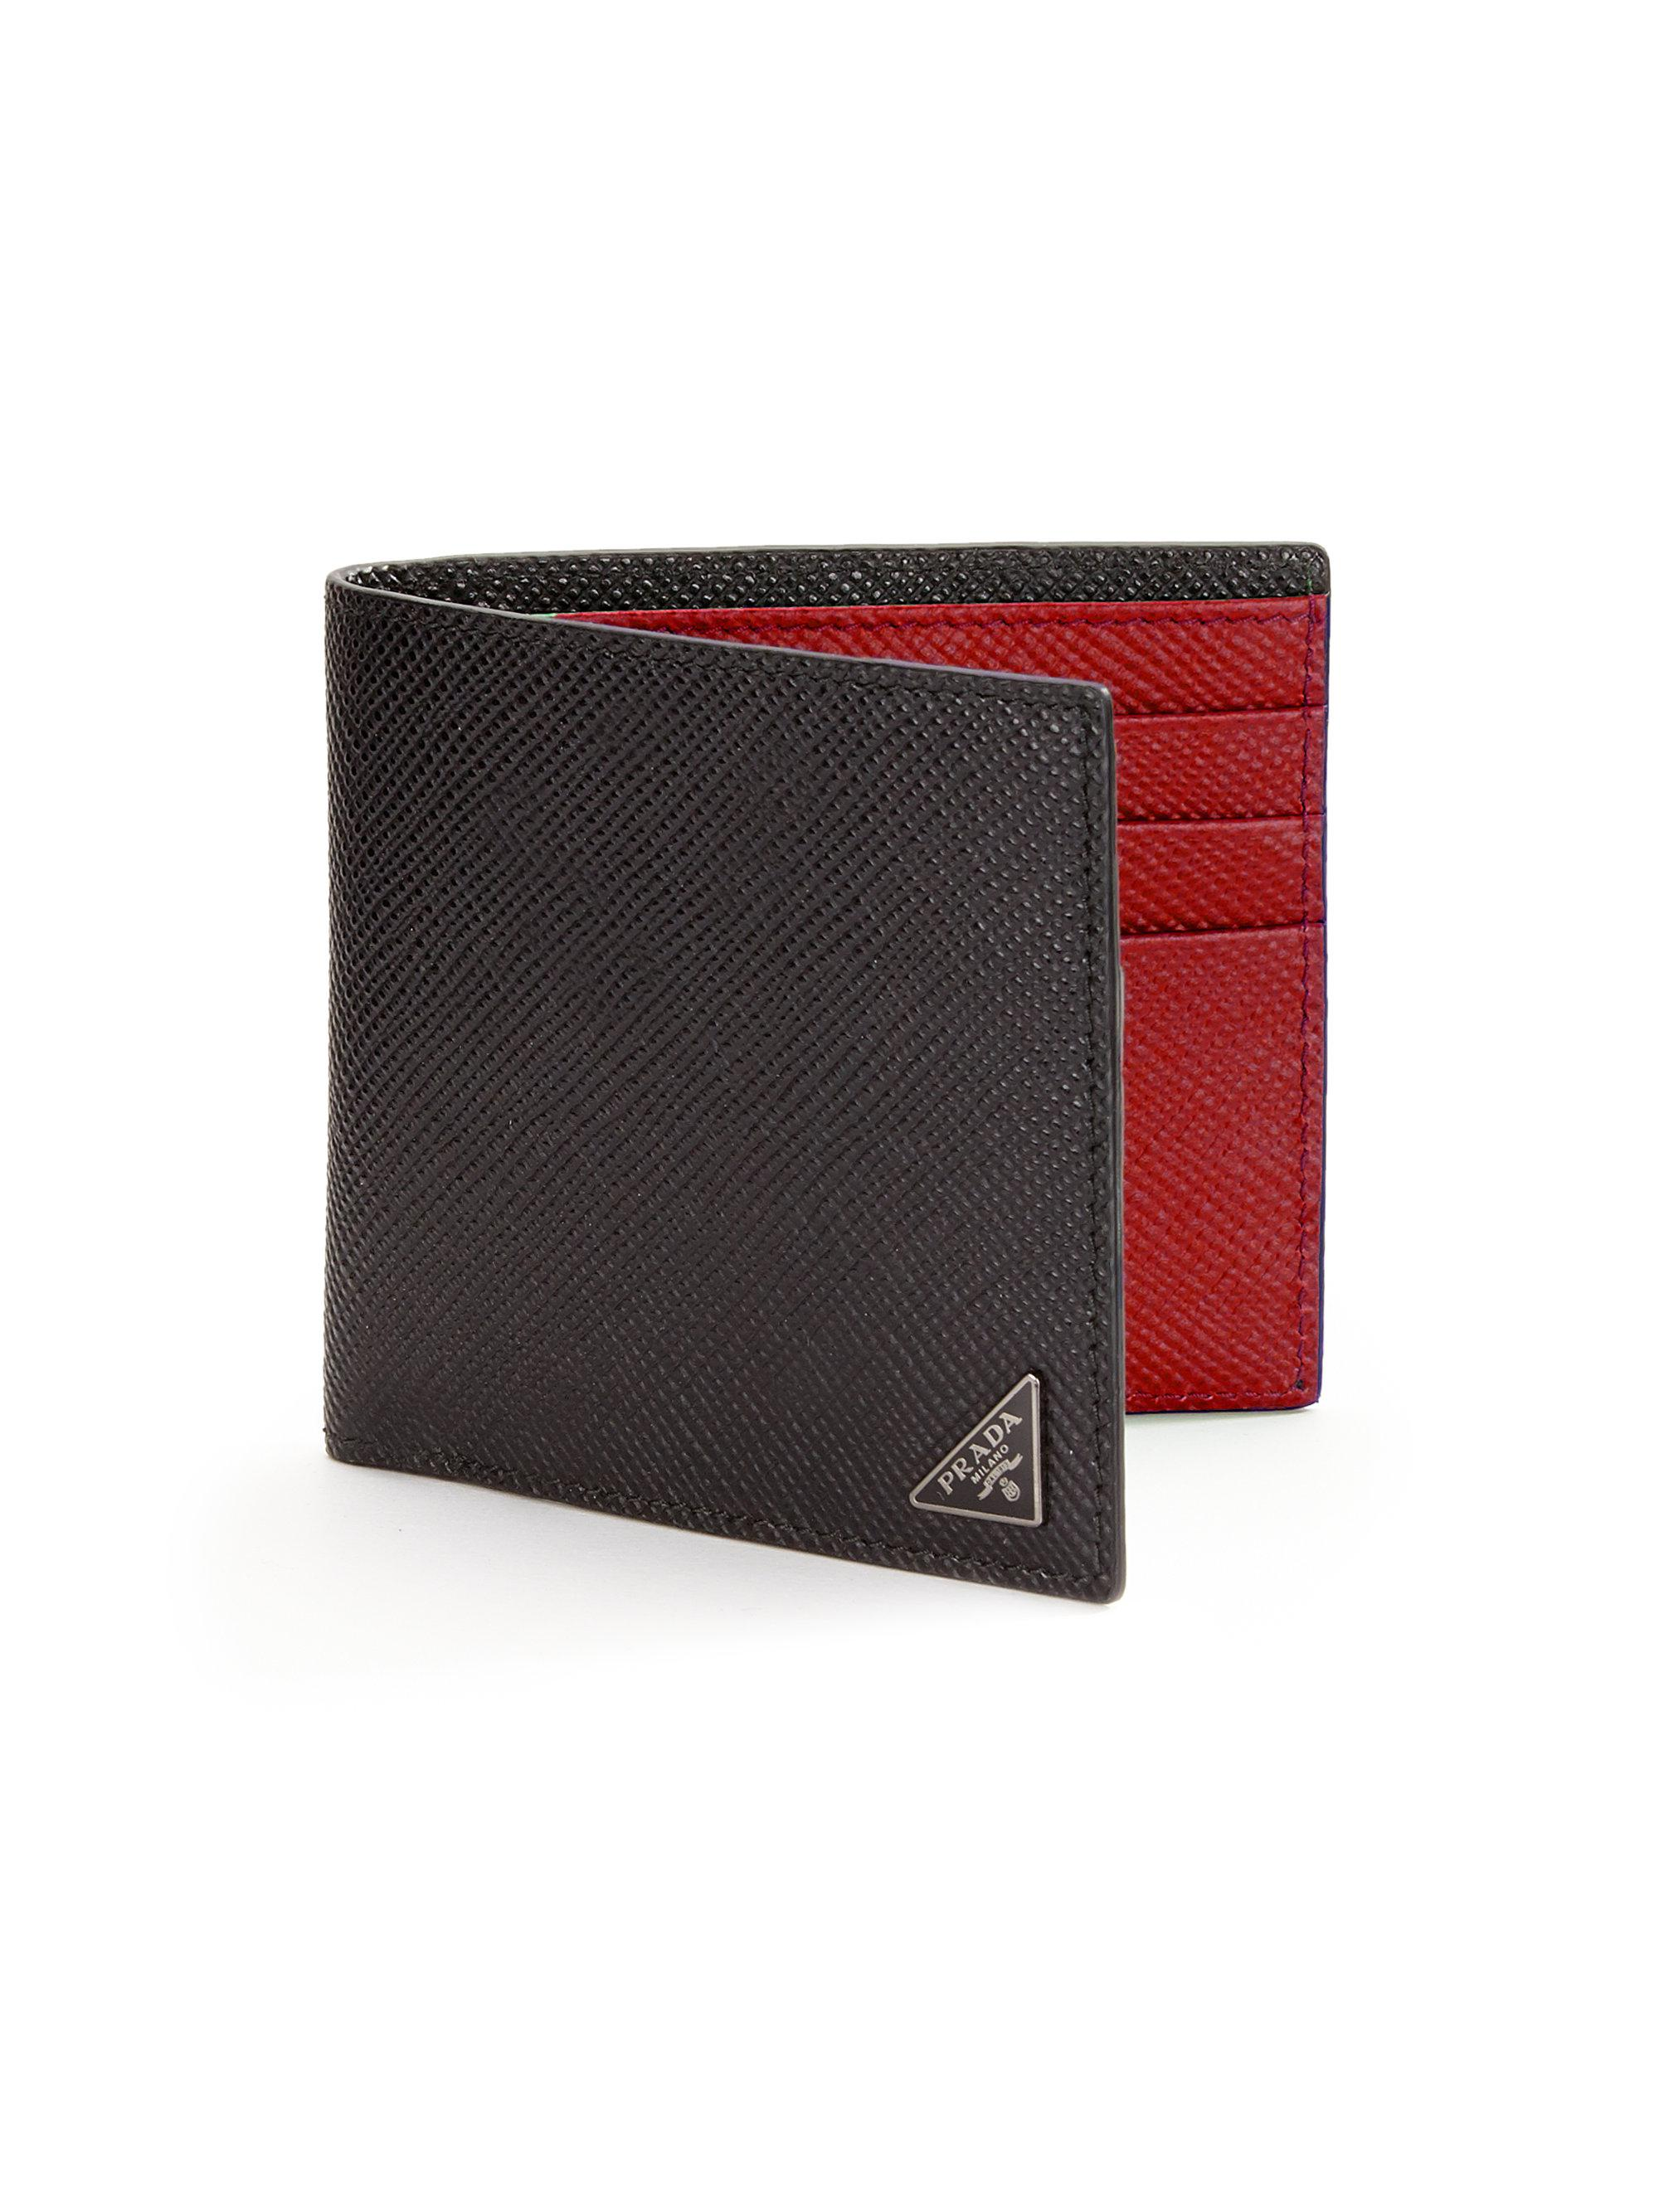 c669c3a0b90e Prada Orizzontale Wallet in Black for Men - Lyst